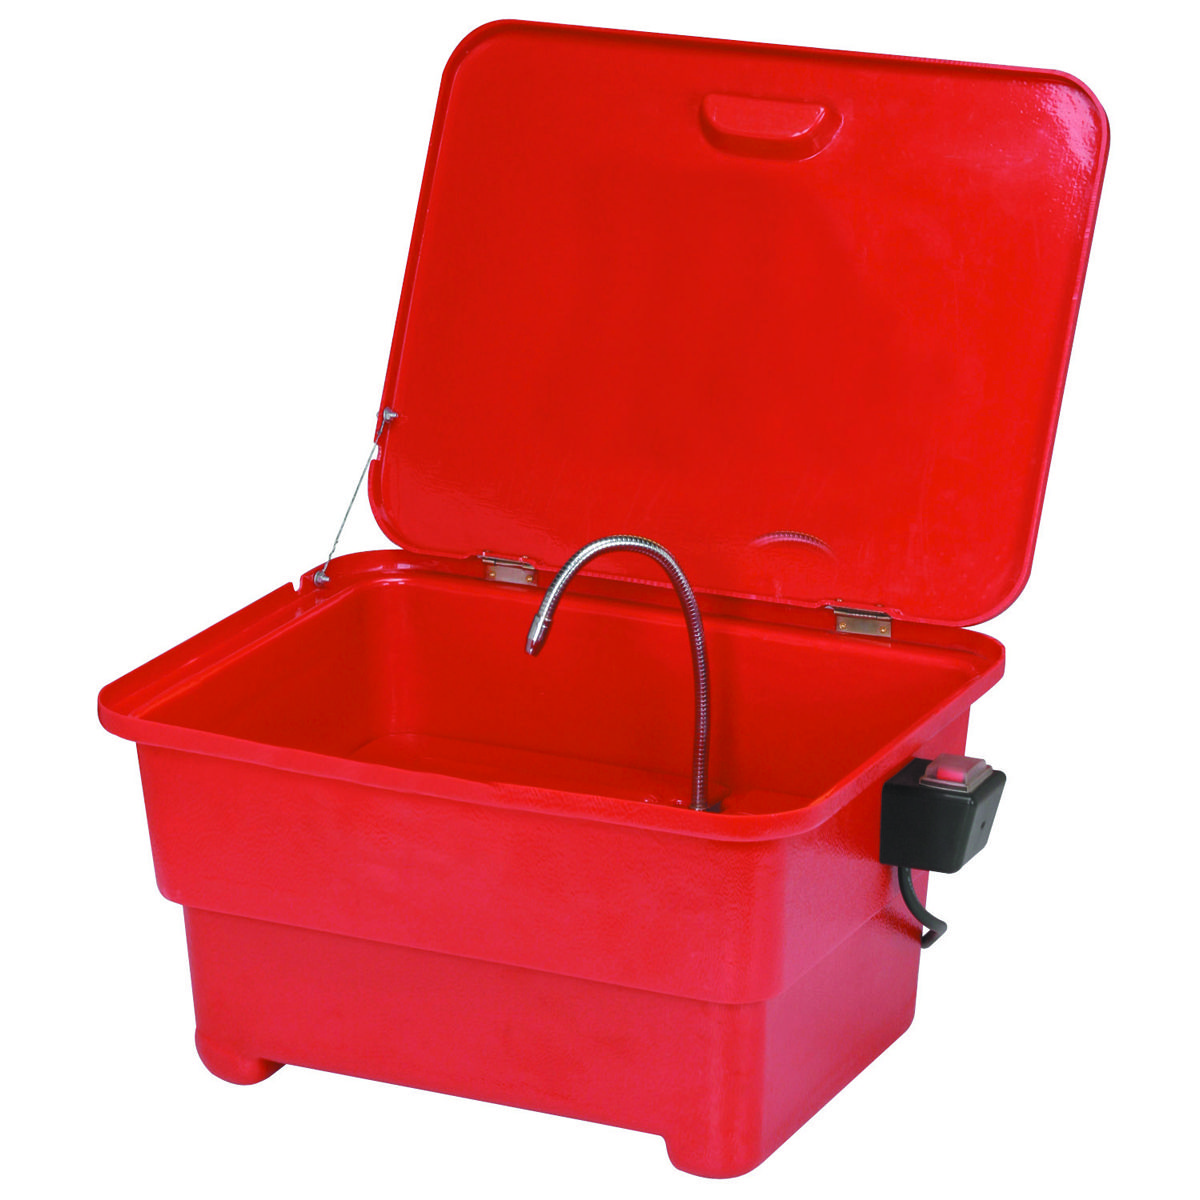 6-1/2 Gallon Parts Washer